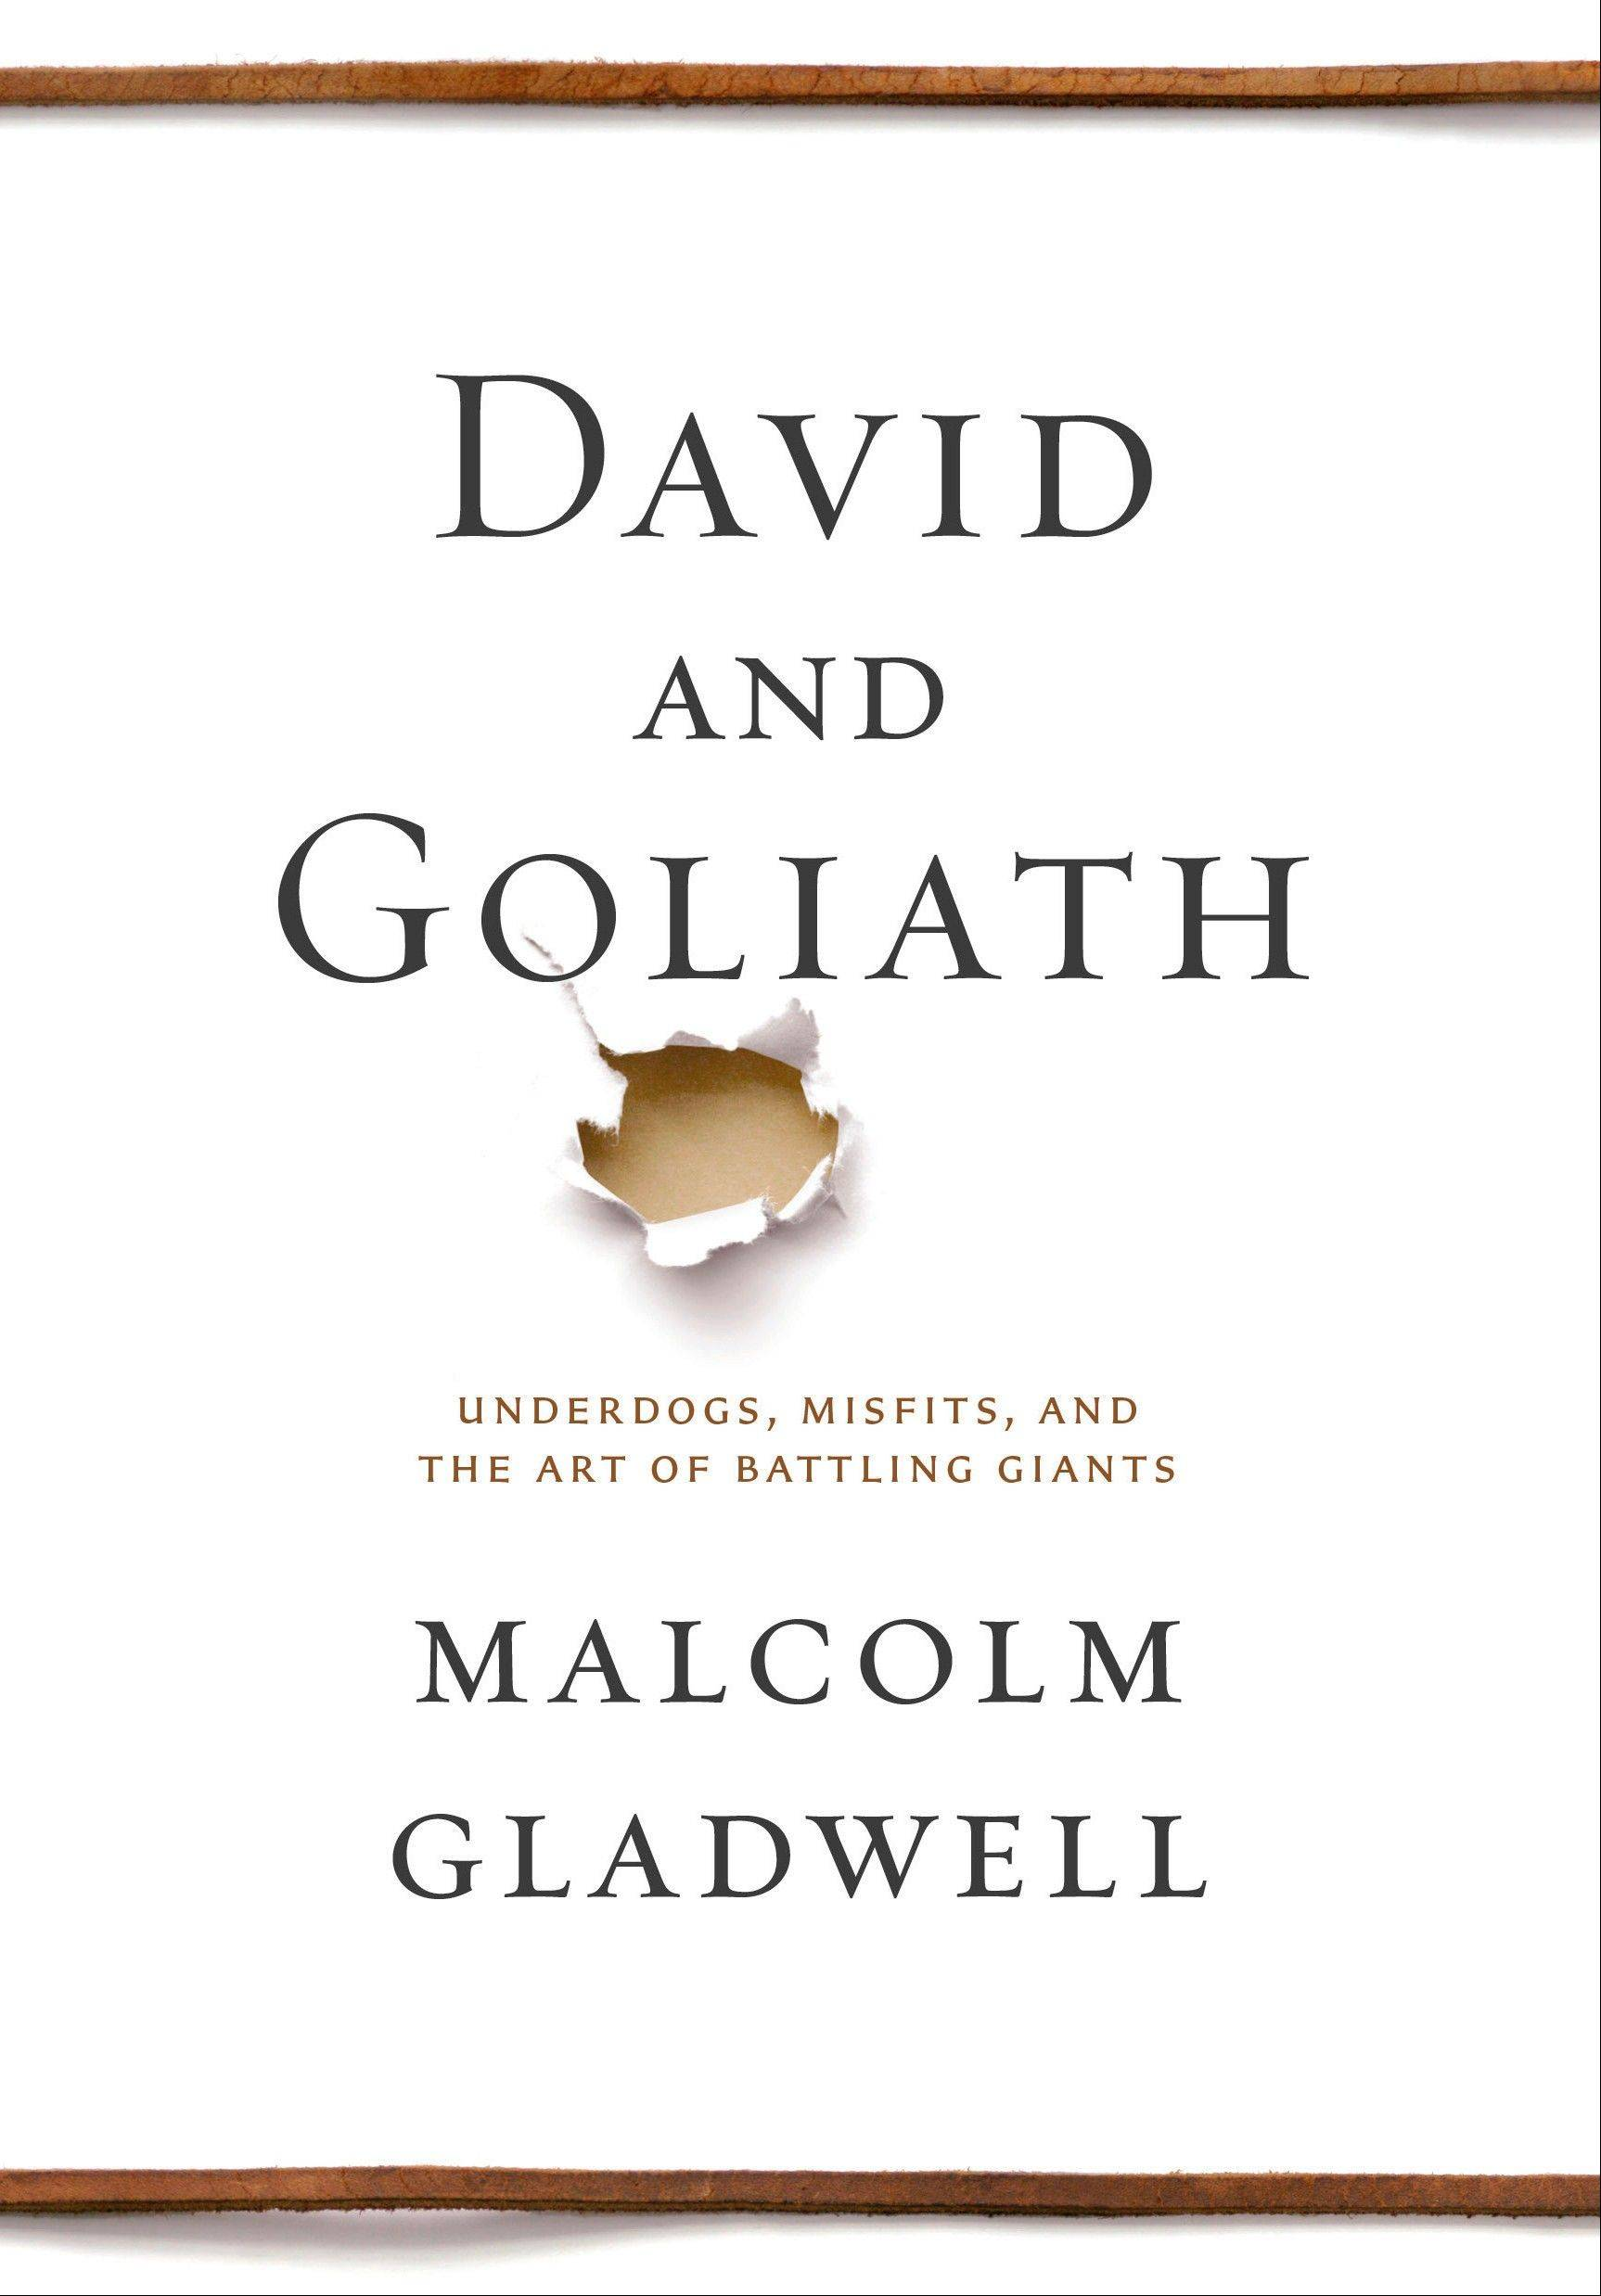 "Malcolm Gladwell, who authored ""David and Goliath,"" is a popularizer of scientific thought and research in best-sellers and The New Yorker magazine."